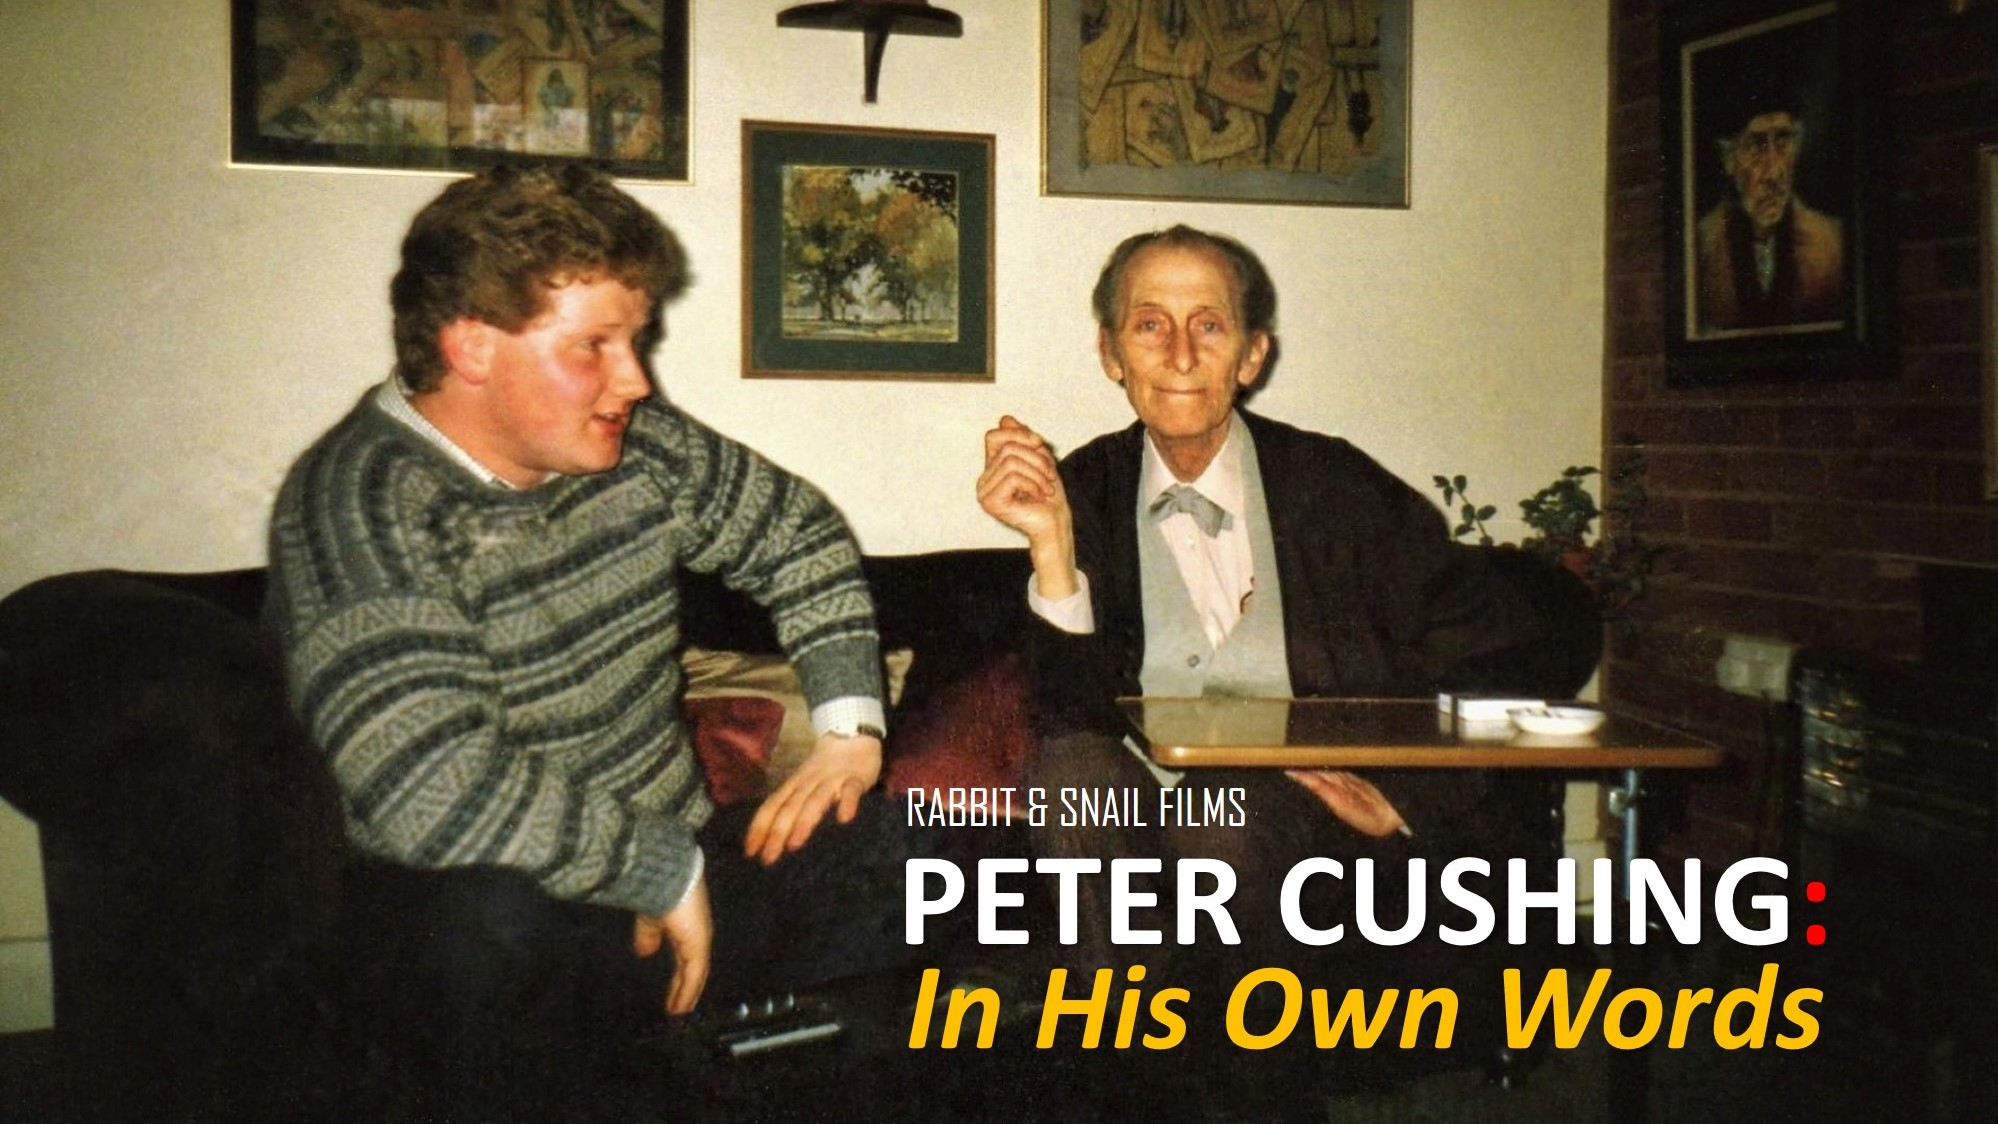 PHOTO 1 - Peter Cushing In His Own Words